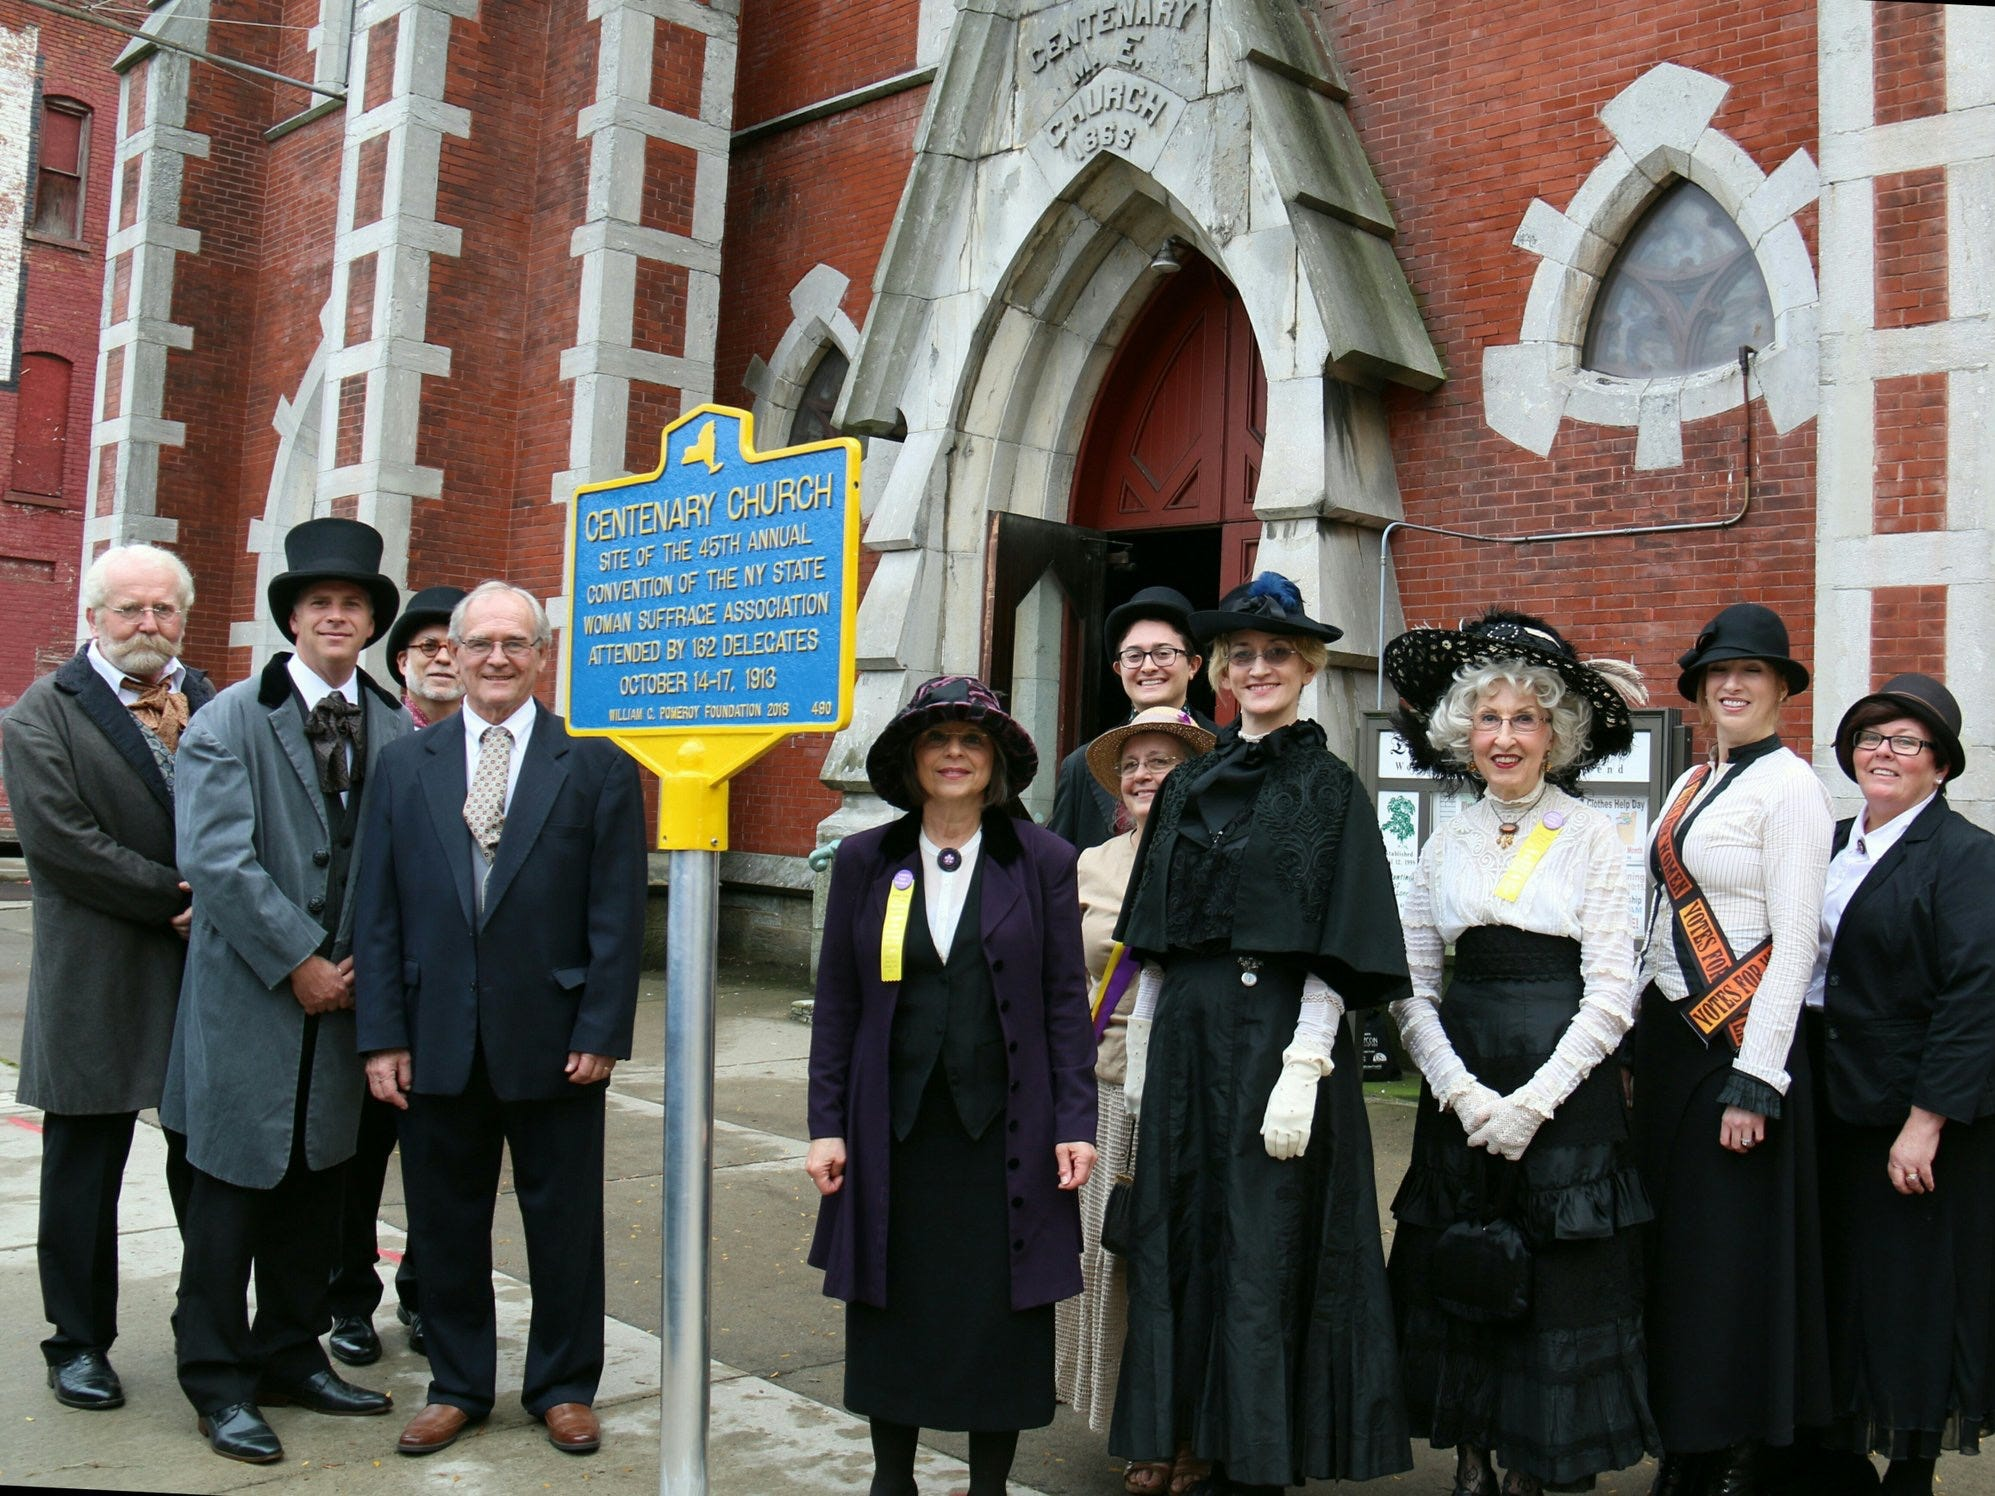 New York State's Path Through History Weekend was celebrated on Oct. 6 with a 1913 NYS Woman Suffrage Association Convention reenactment and historical marker unveiling at the Landmark Church in Binghamton.